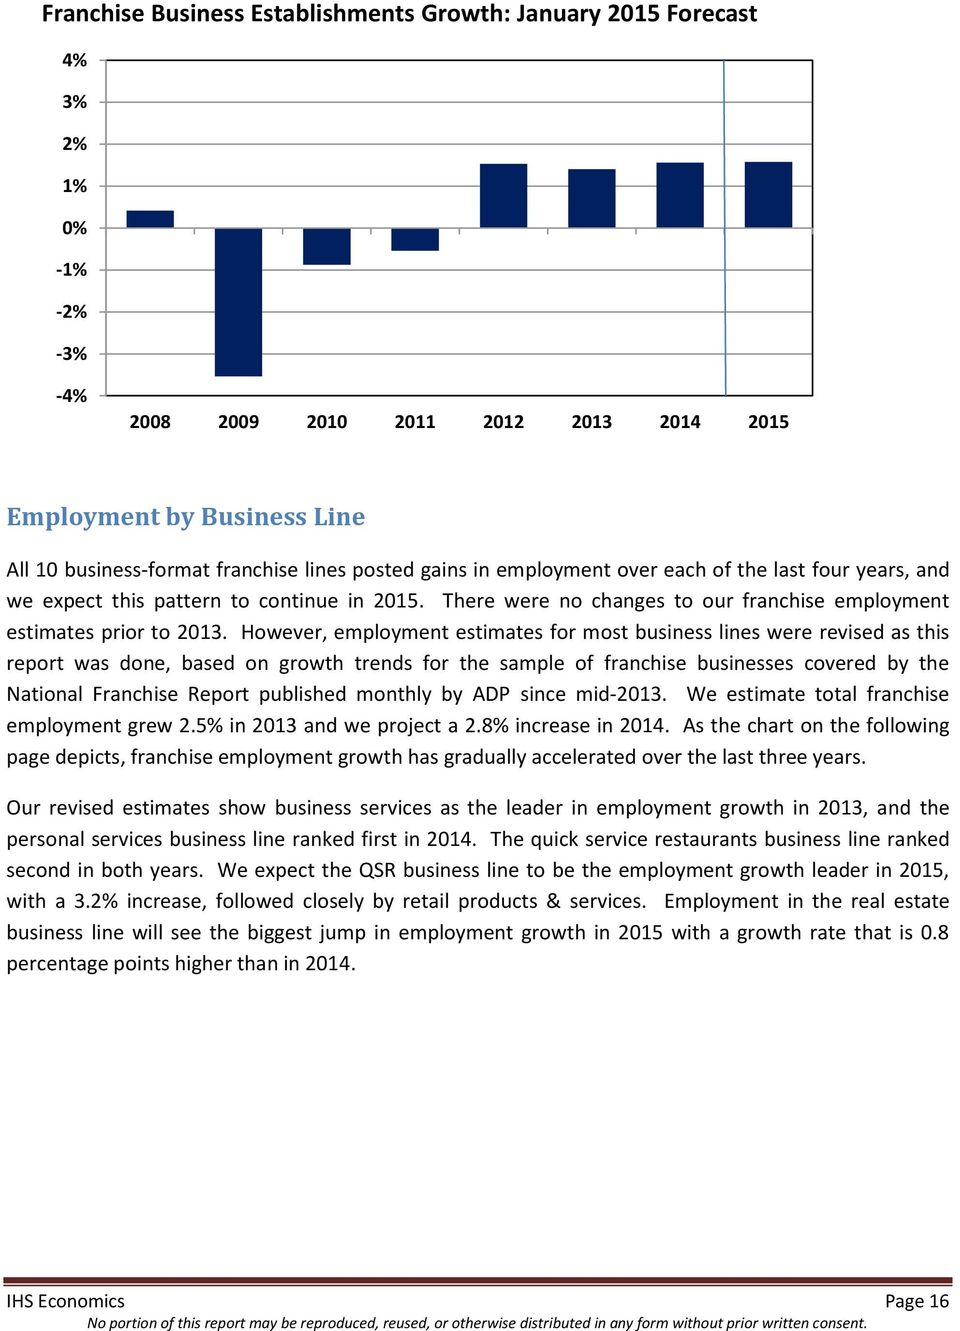 However, employment estimates for most business lines were revised as this report was done, based on growth trends for the sample of franchise businesses covered by the National Franchise Report